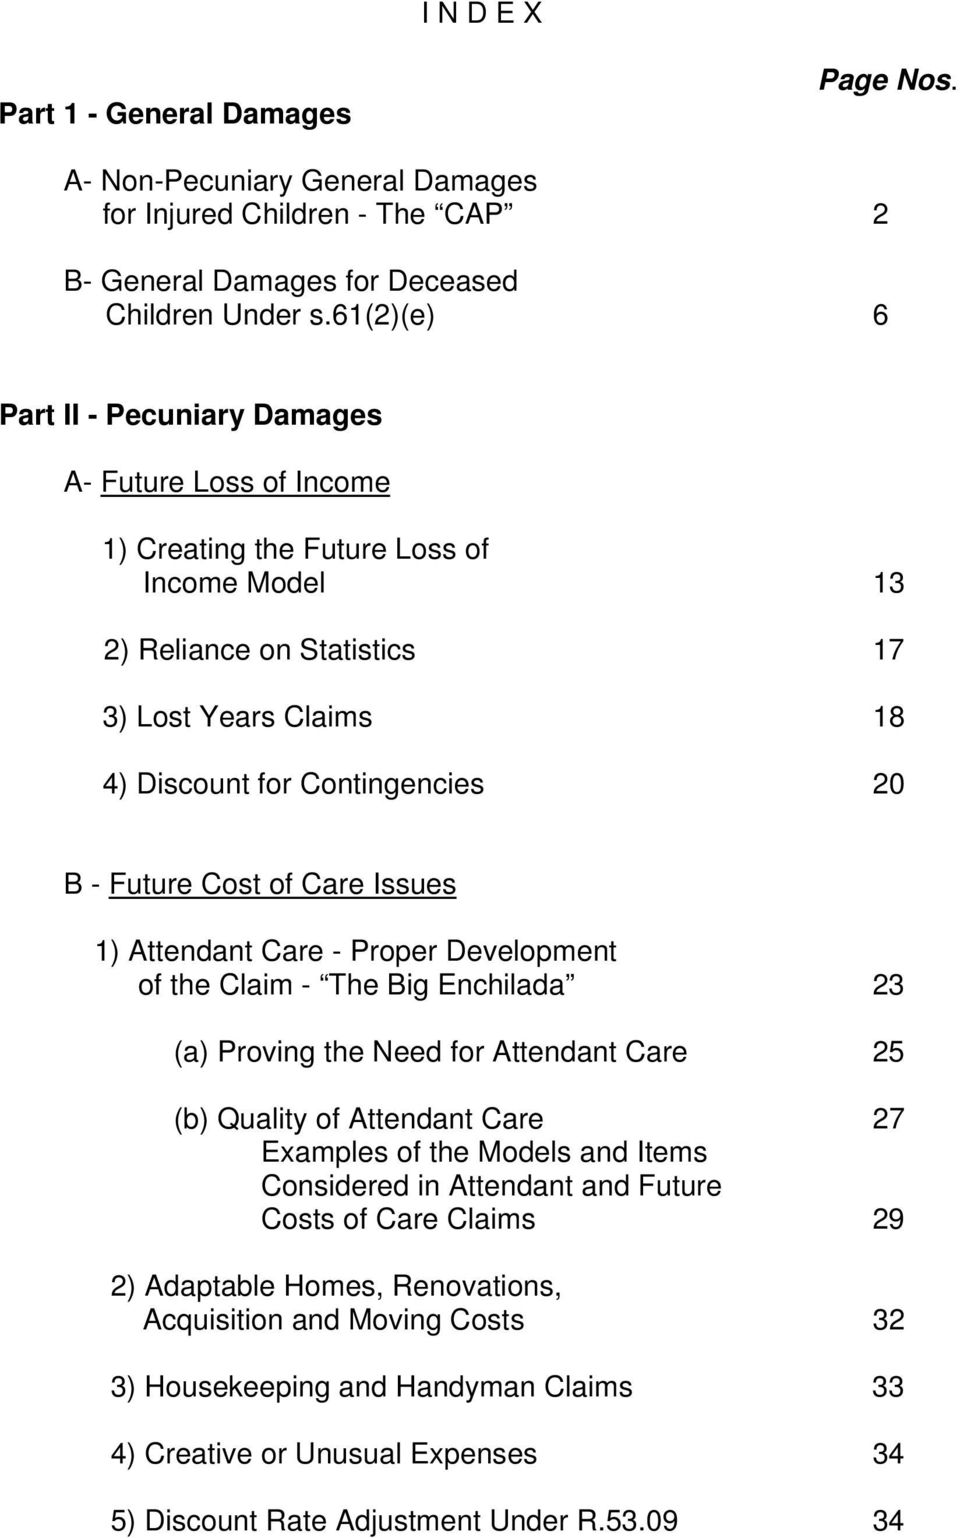 - Future Cost of Care Issues 1) Attendant Care - Proper Development of the Claim - The Big Enchilada 23 (a) Proving the Need for Attendant Care 25 (b) Quality of Attendant Care 27 Examples of the